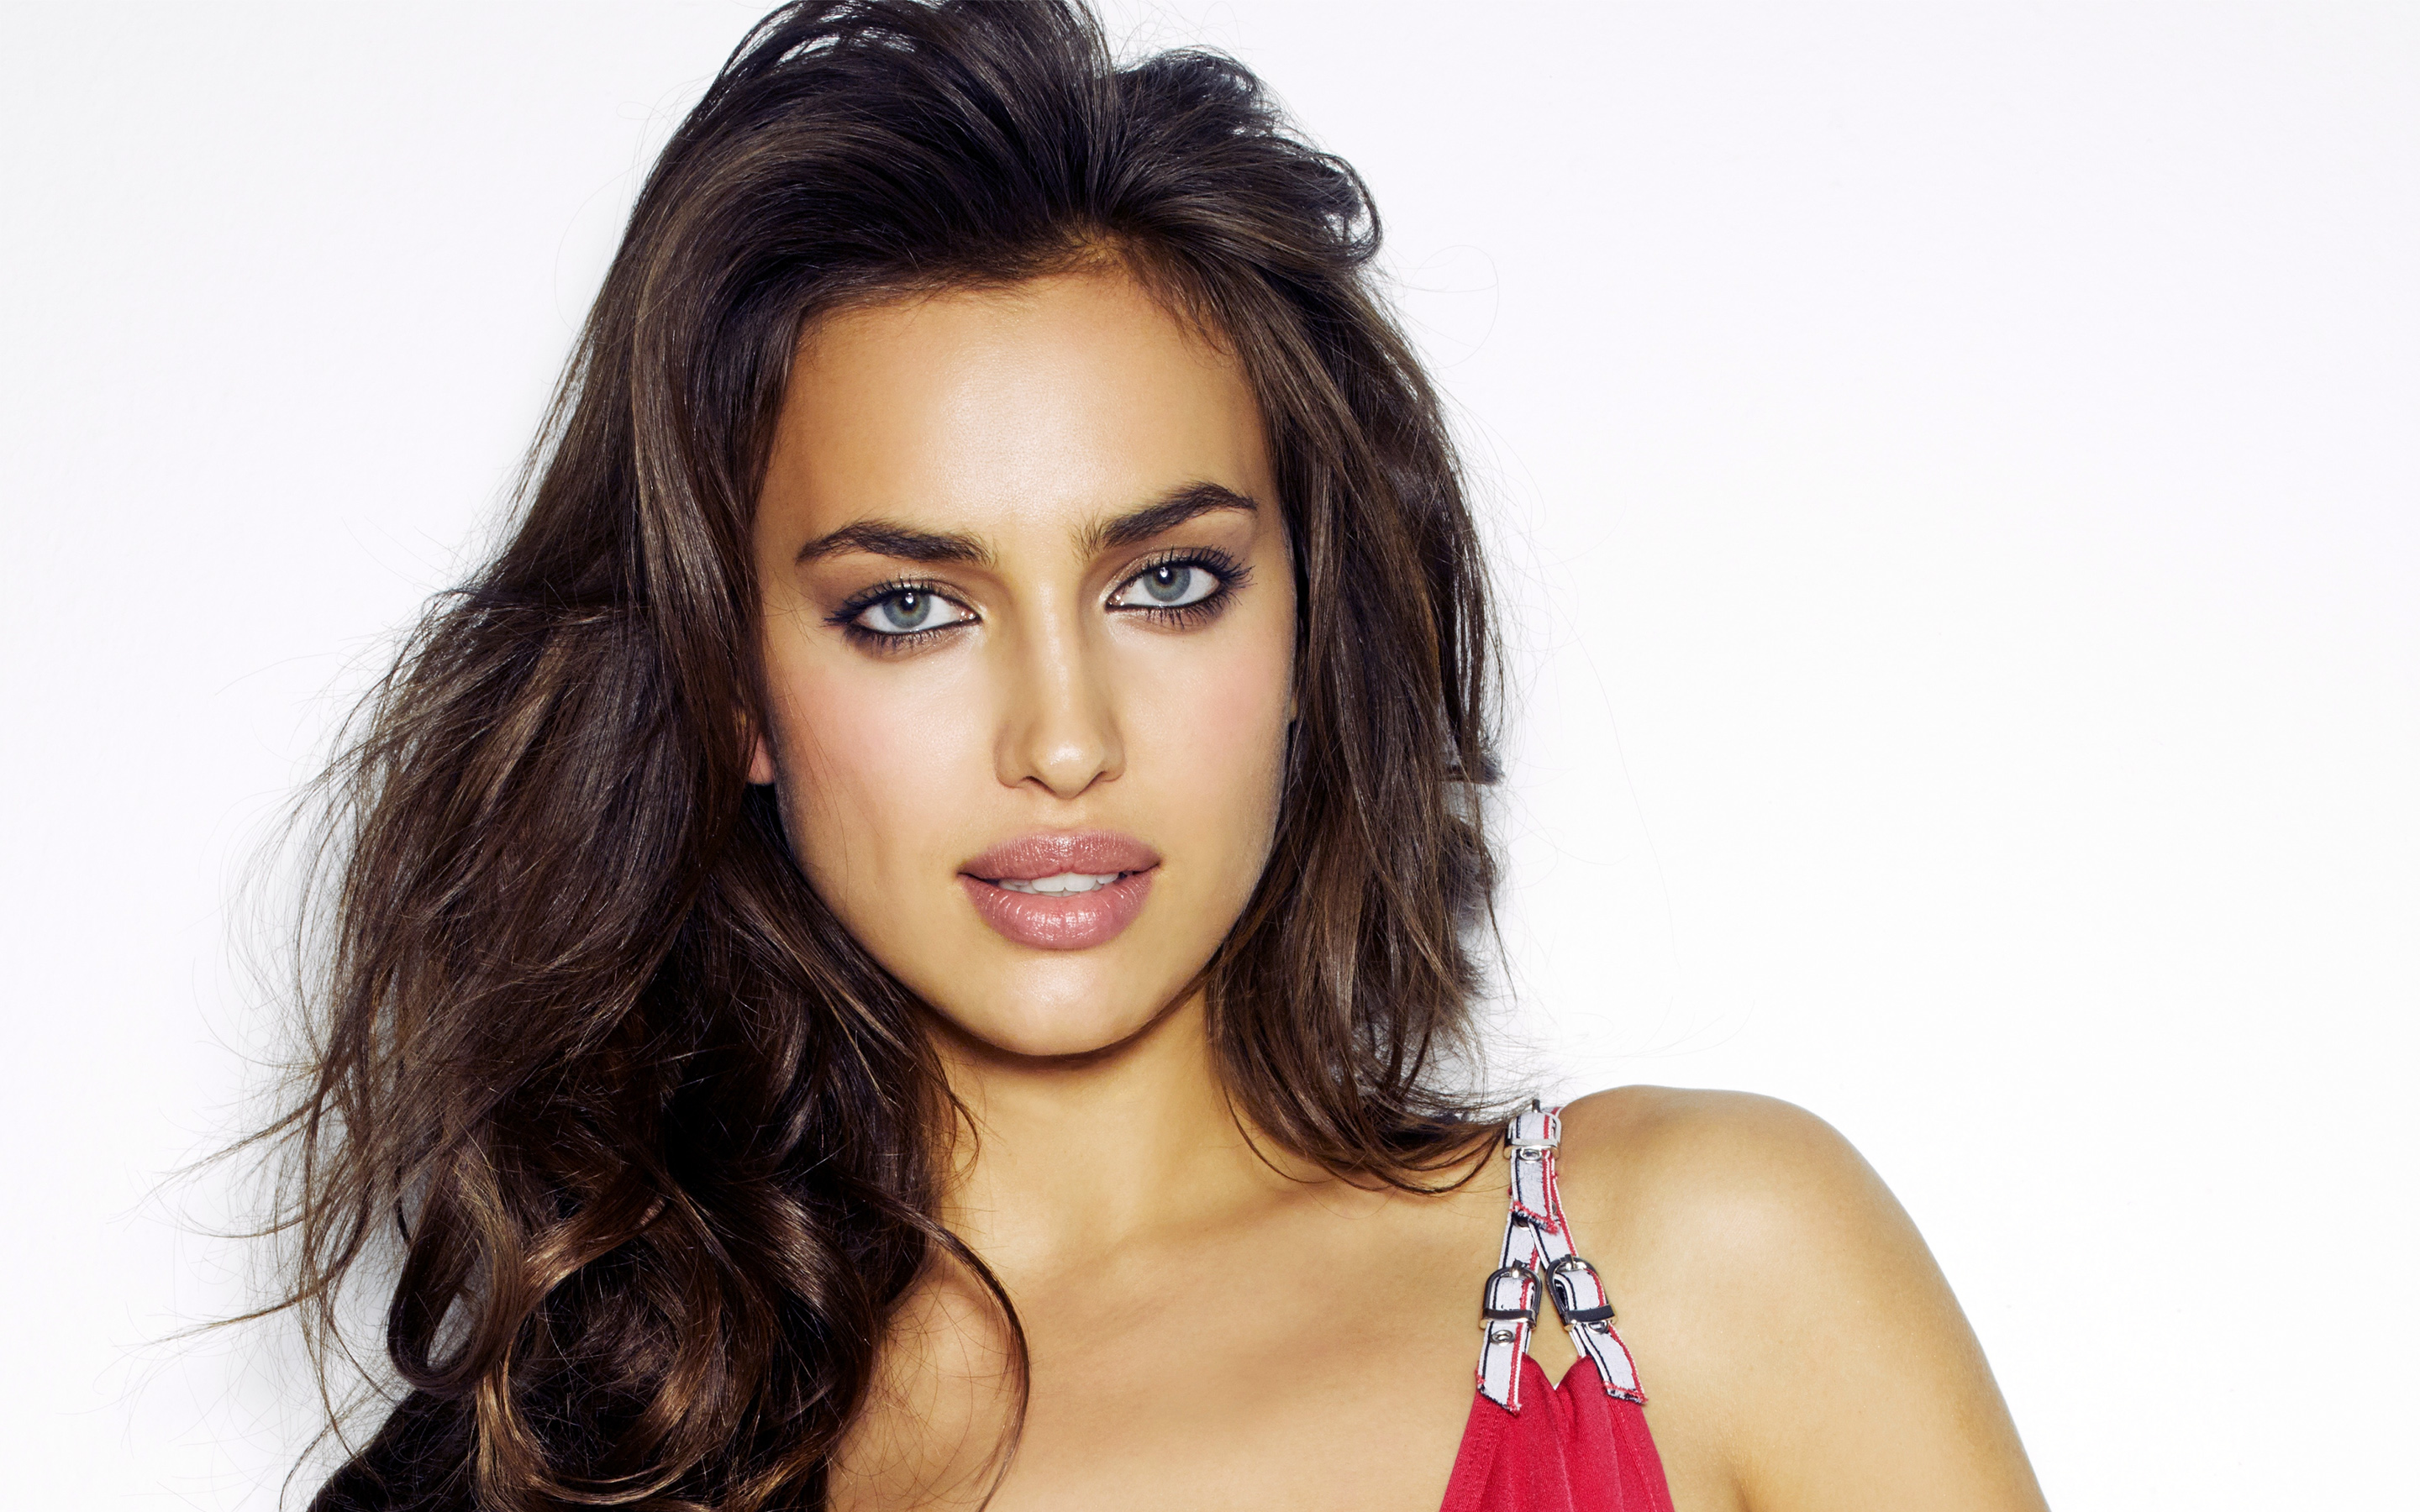 Irina Shayk 3 wallpaper